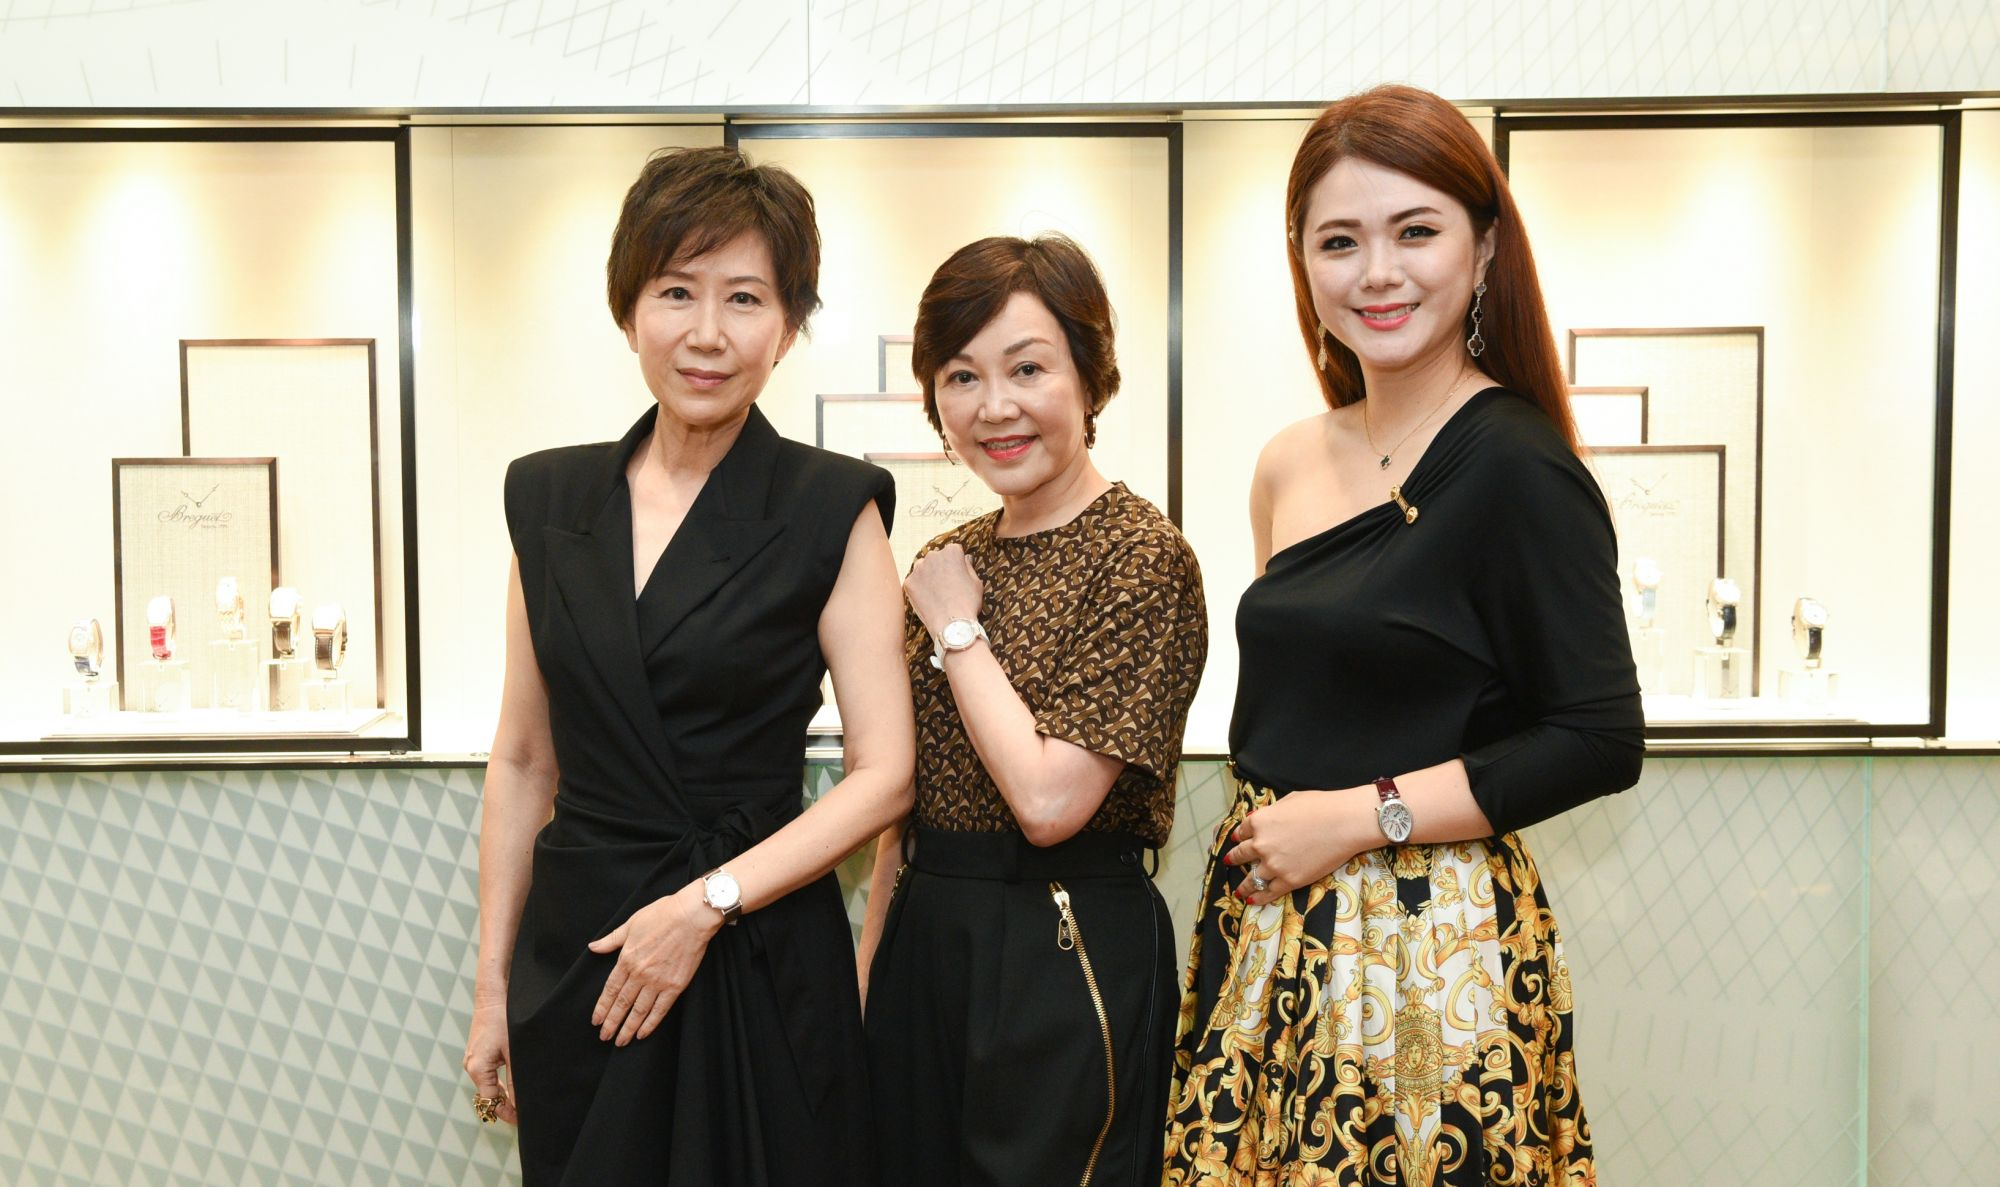 A Ladies' Night At The Breguet Boutique